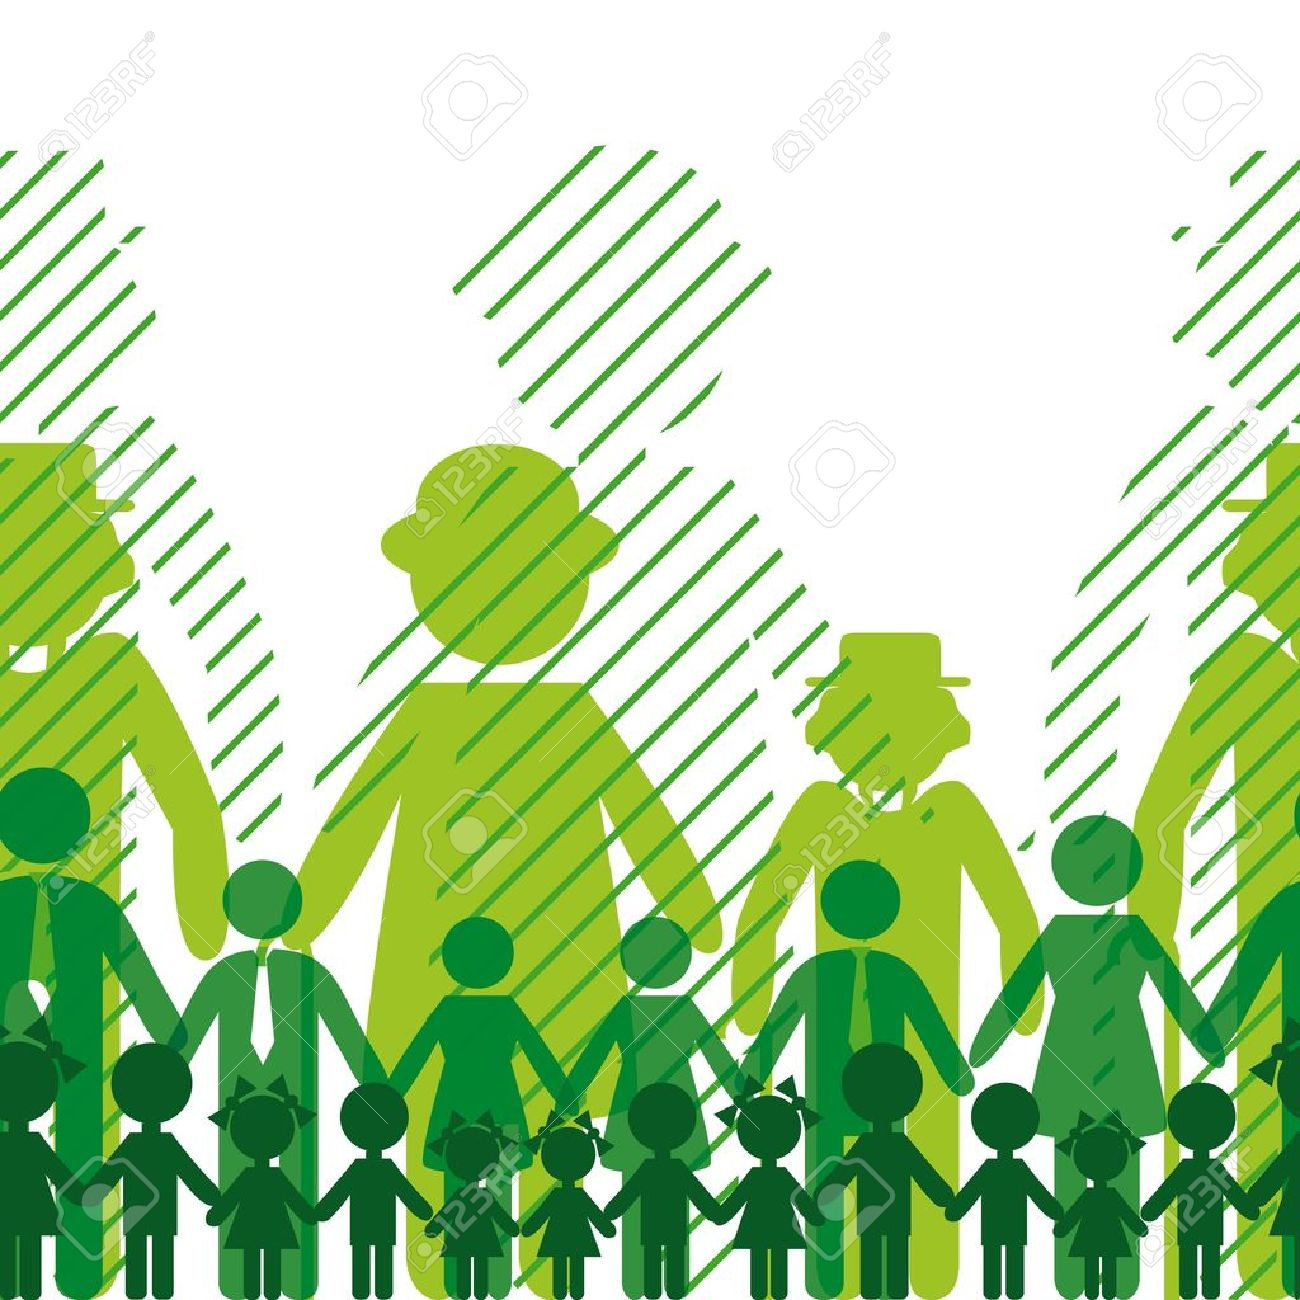 Ecology icon, family background. Seamless generation communication people. Social network chain. Stock Vector - 10014591